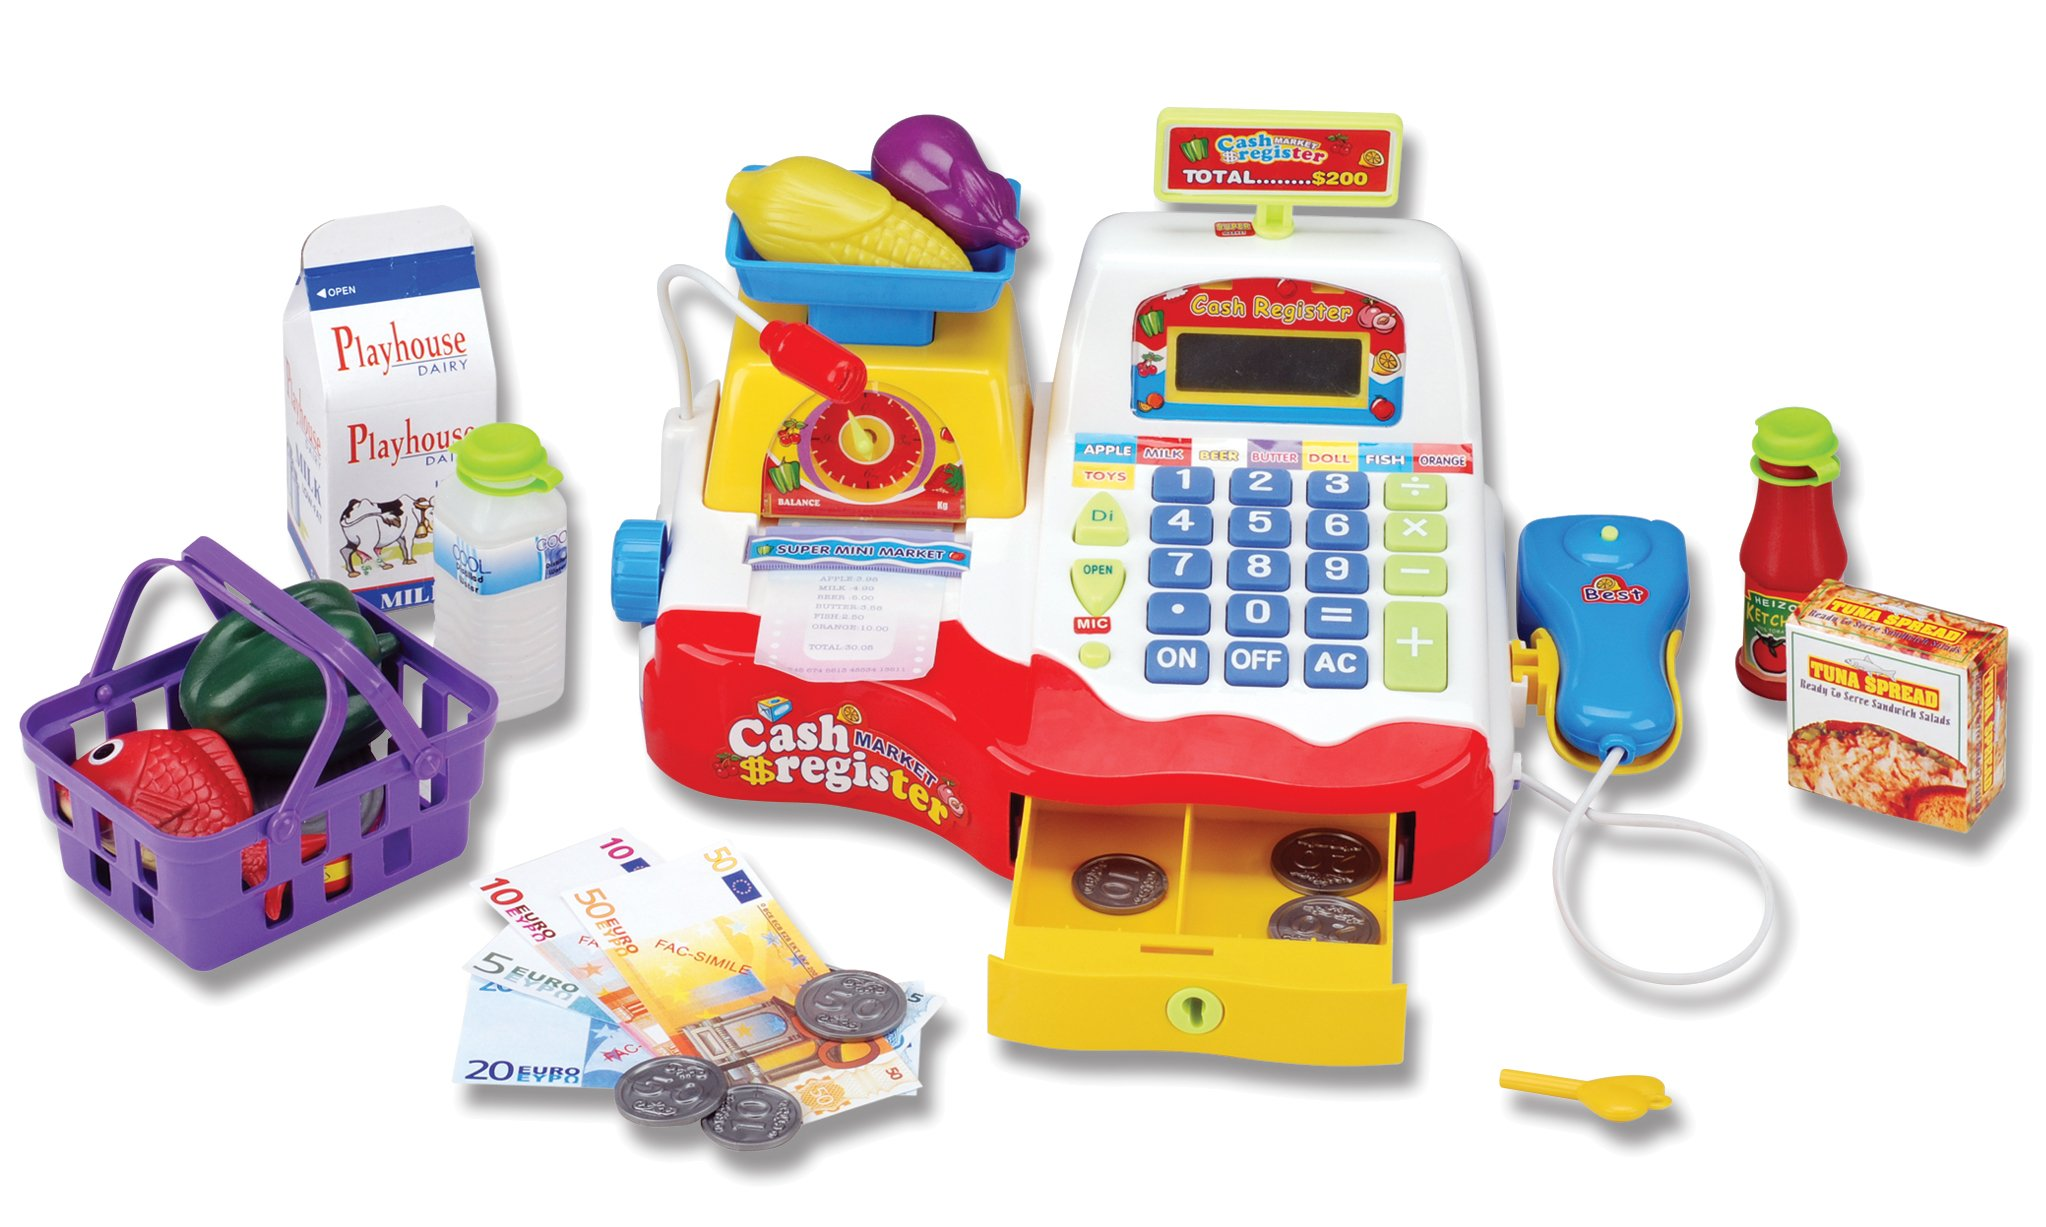 Supermarket Cash Register with Checkout Scanner, Weight Scale, Microphone, Calculator, Play Money and Food Shopping Playset for kids by Liberty Imports